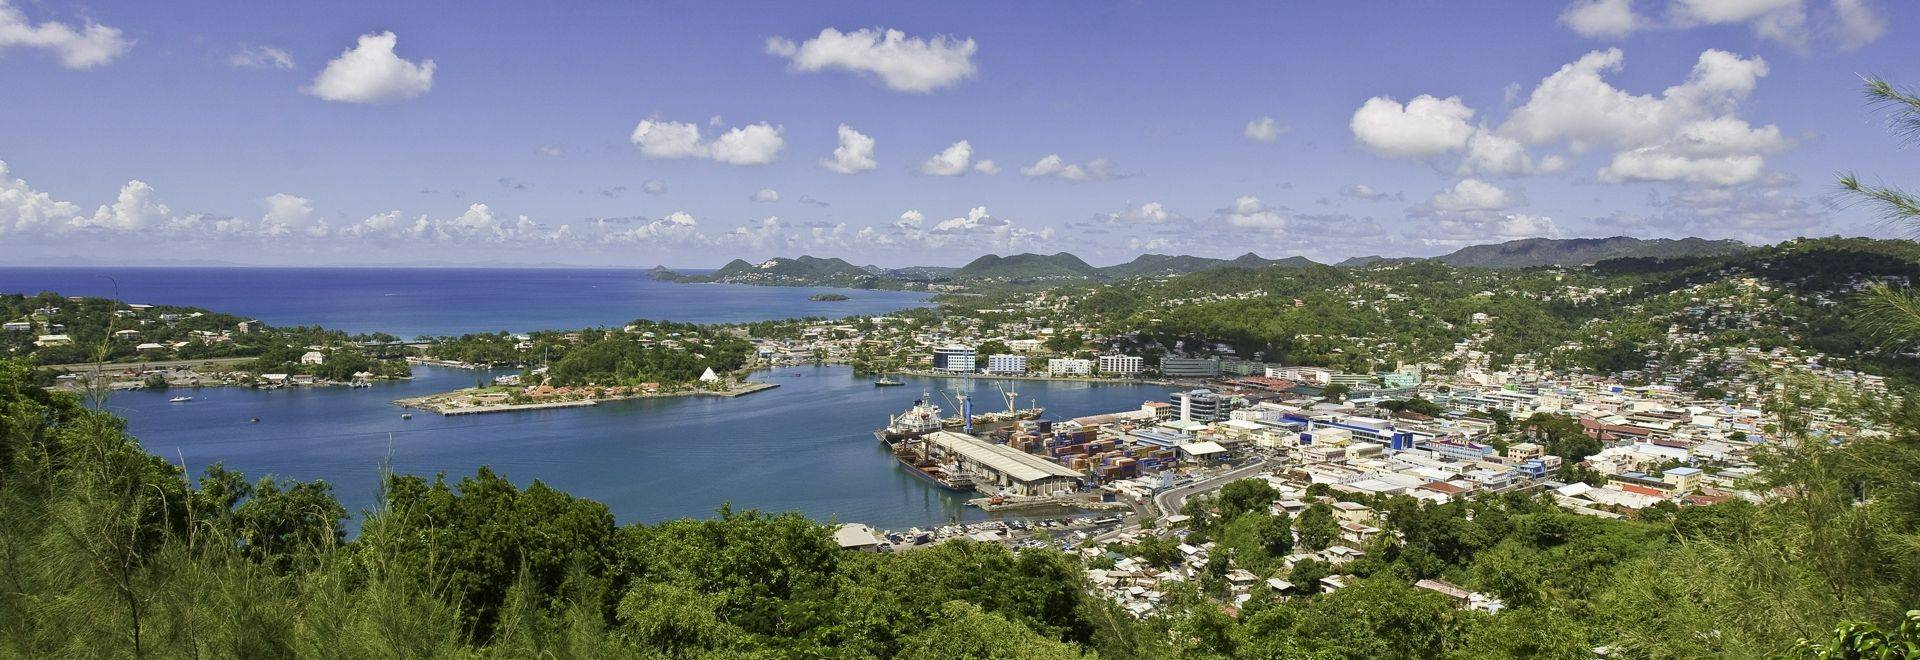 Castries from the Morne